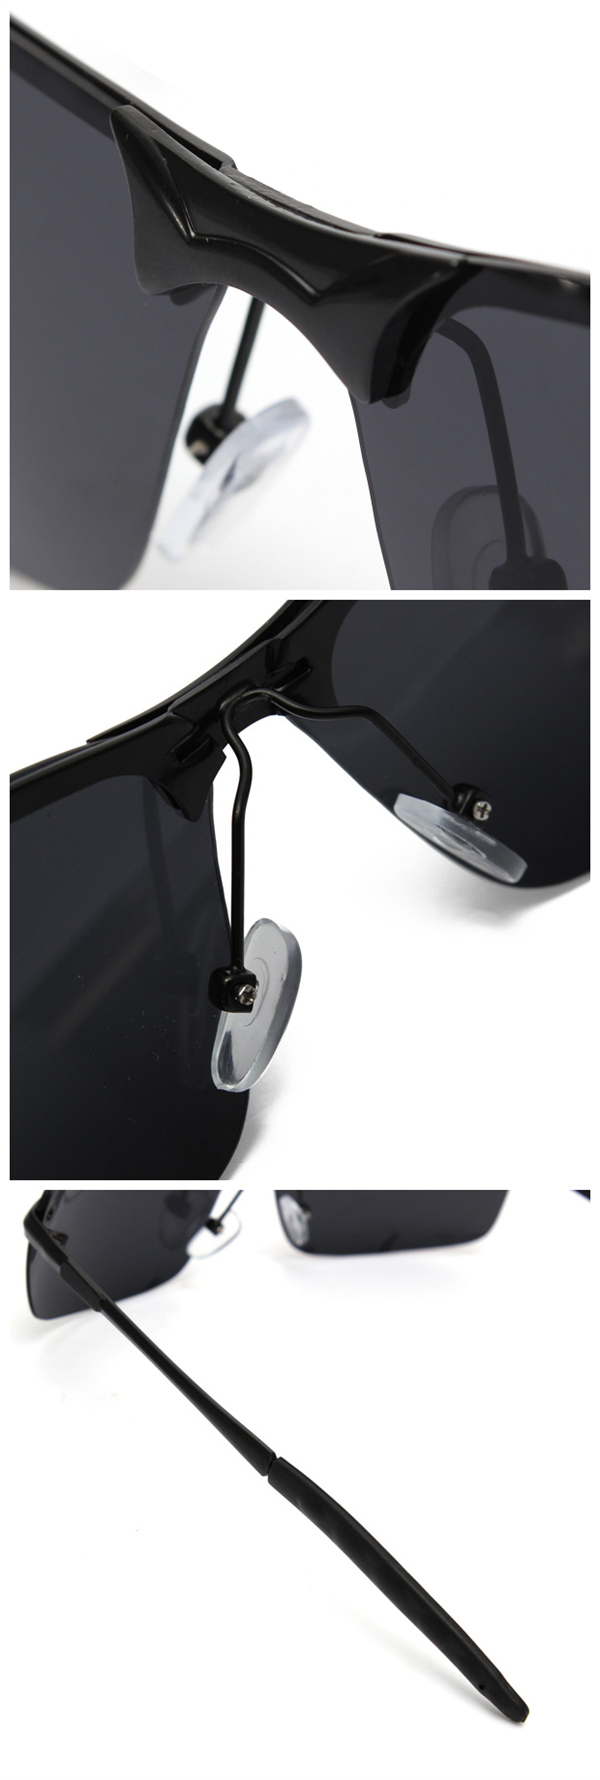 Buy UV400 Polarized Sunglasses Outdoor Glasses Goggles ...